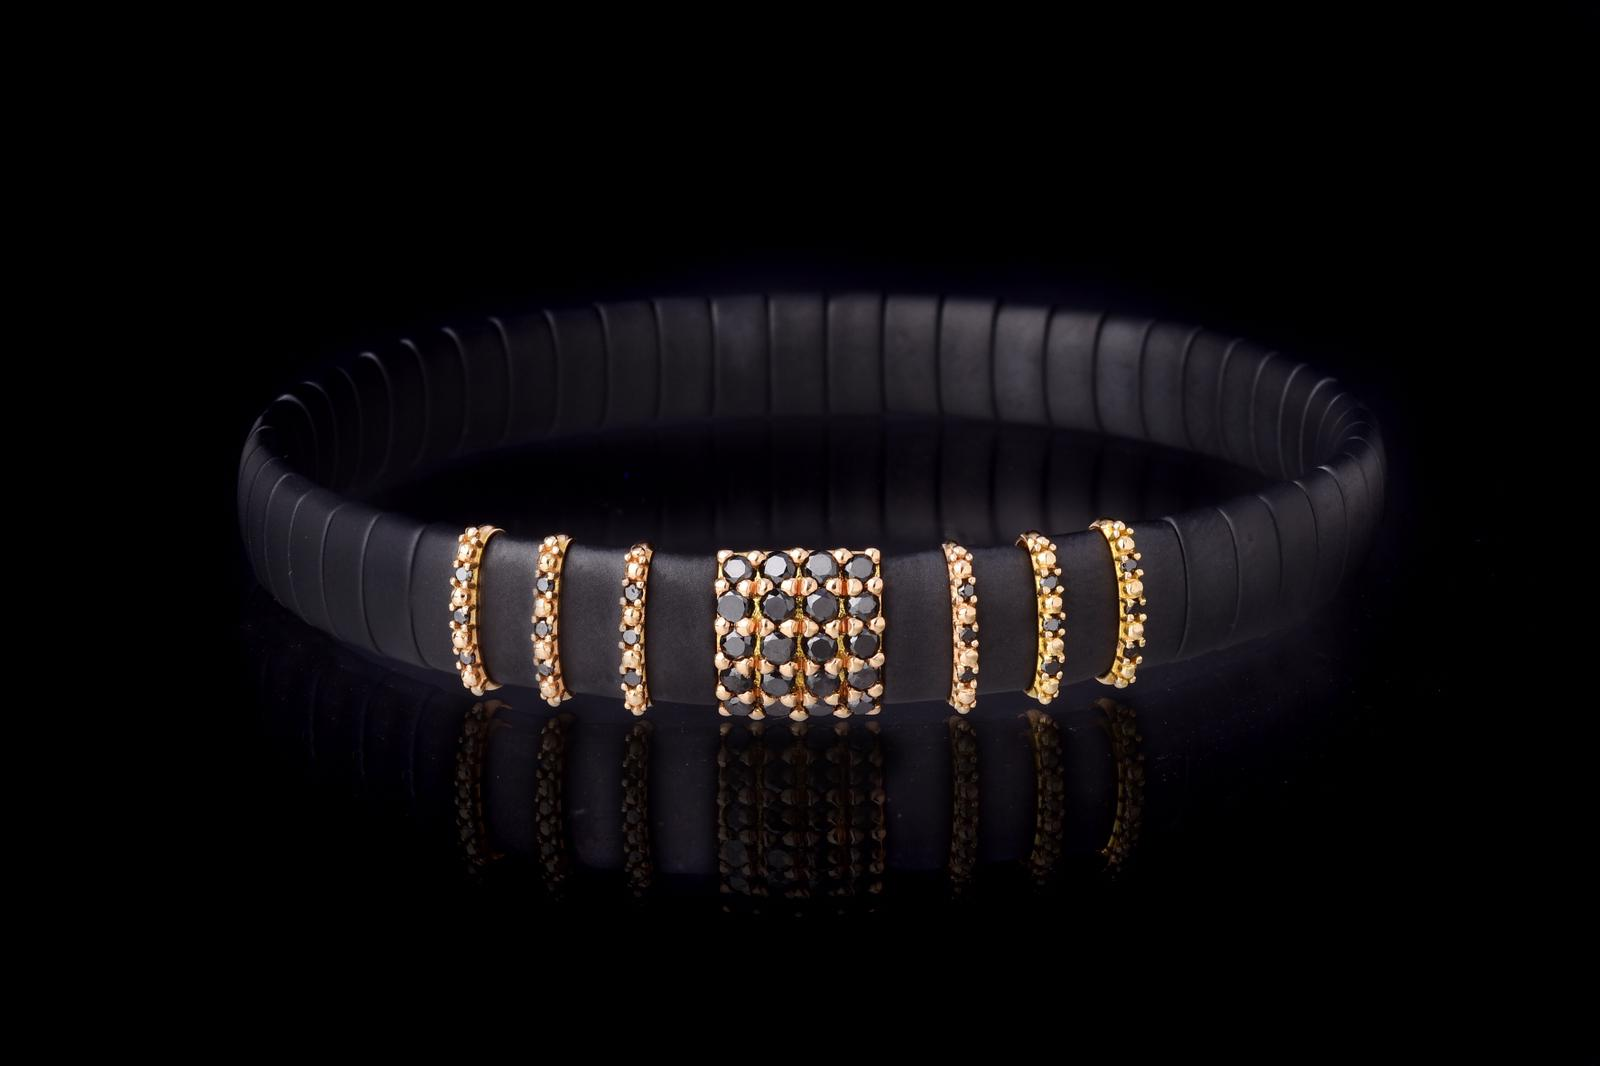 and 6 slim Inserts in Rose Gold 18 Kt and Black Diamonds -DN Ct. 0,14